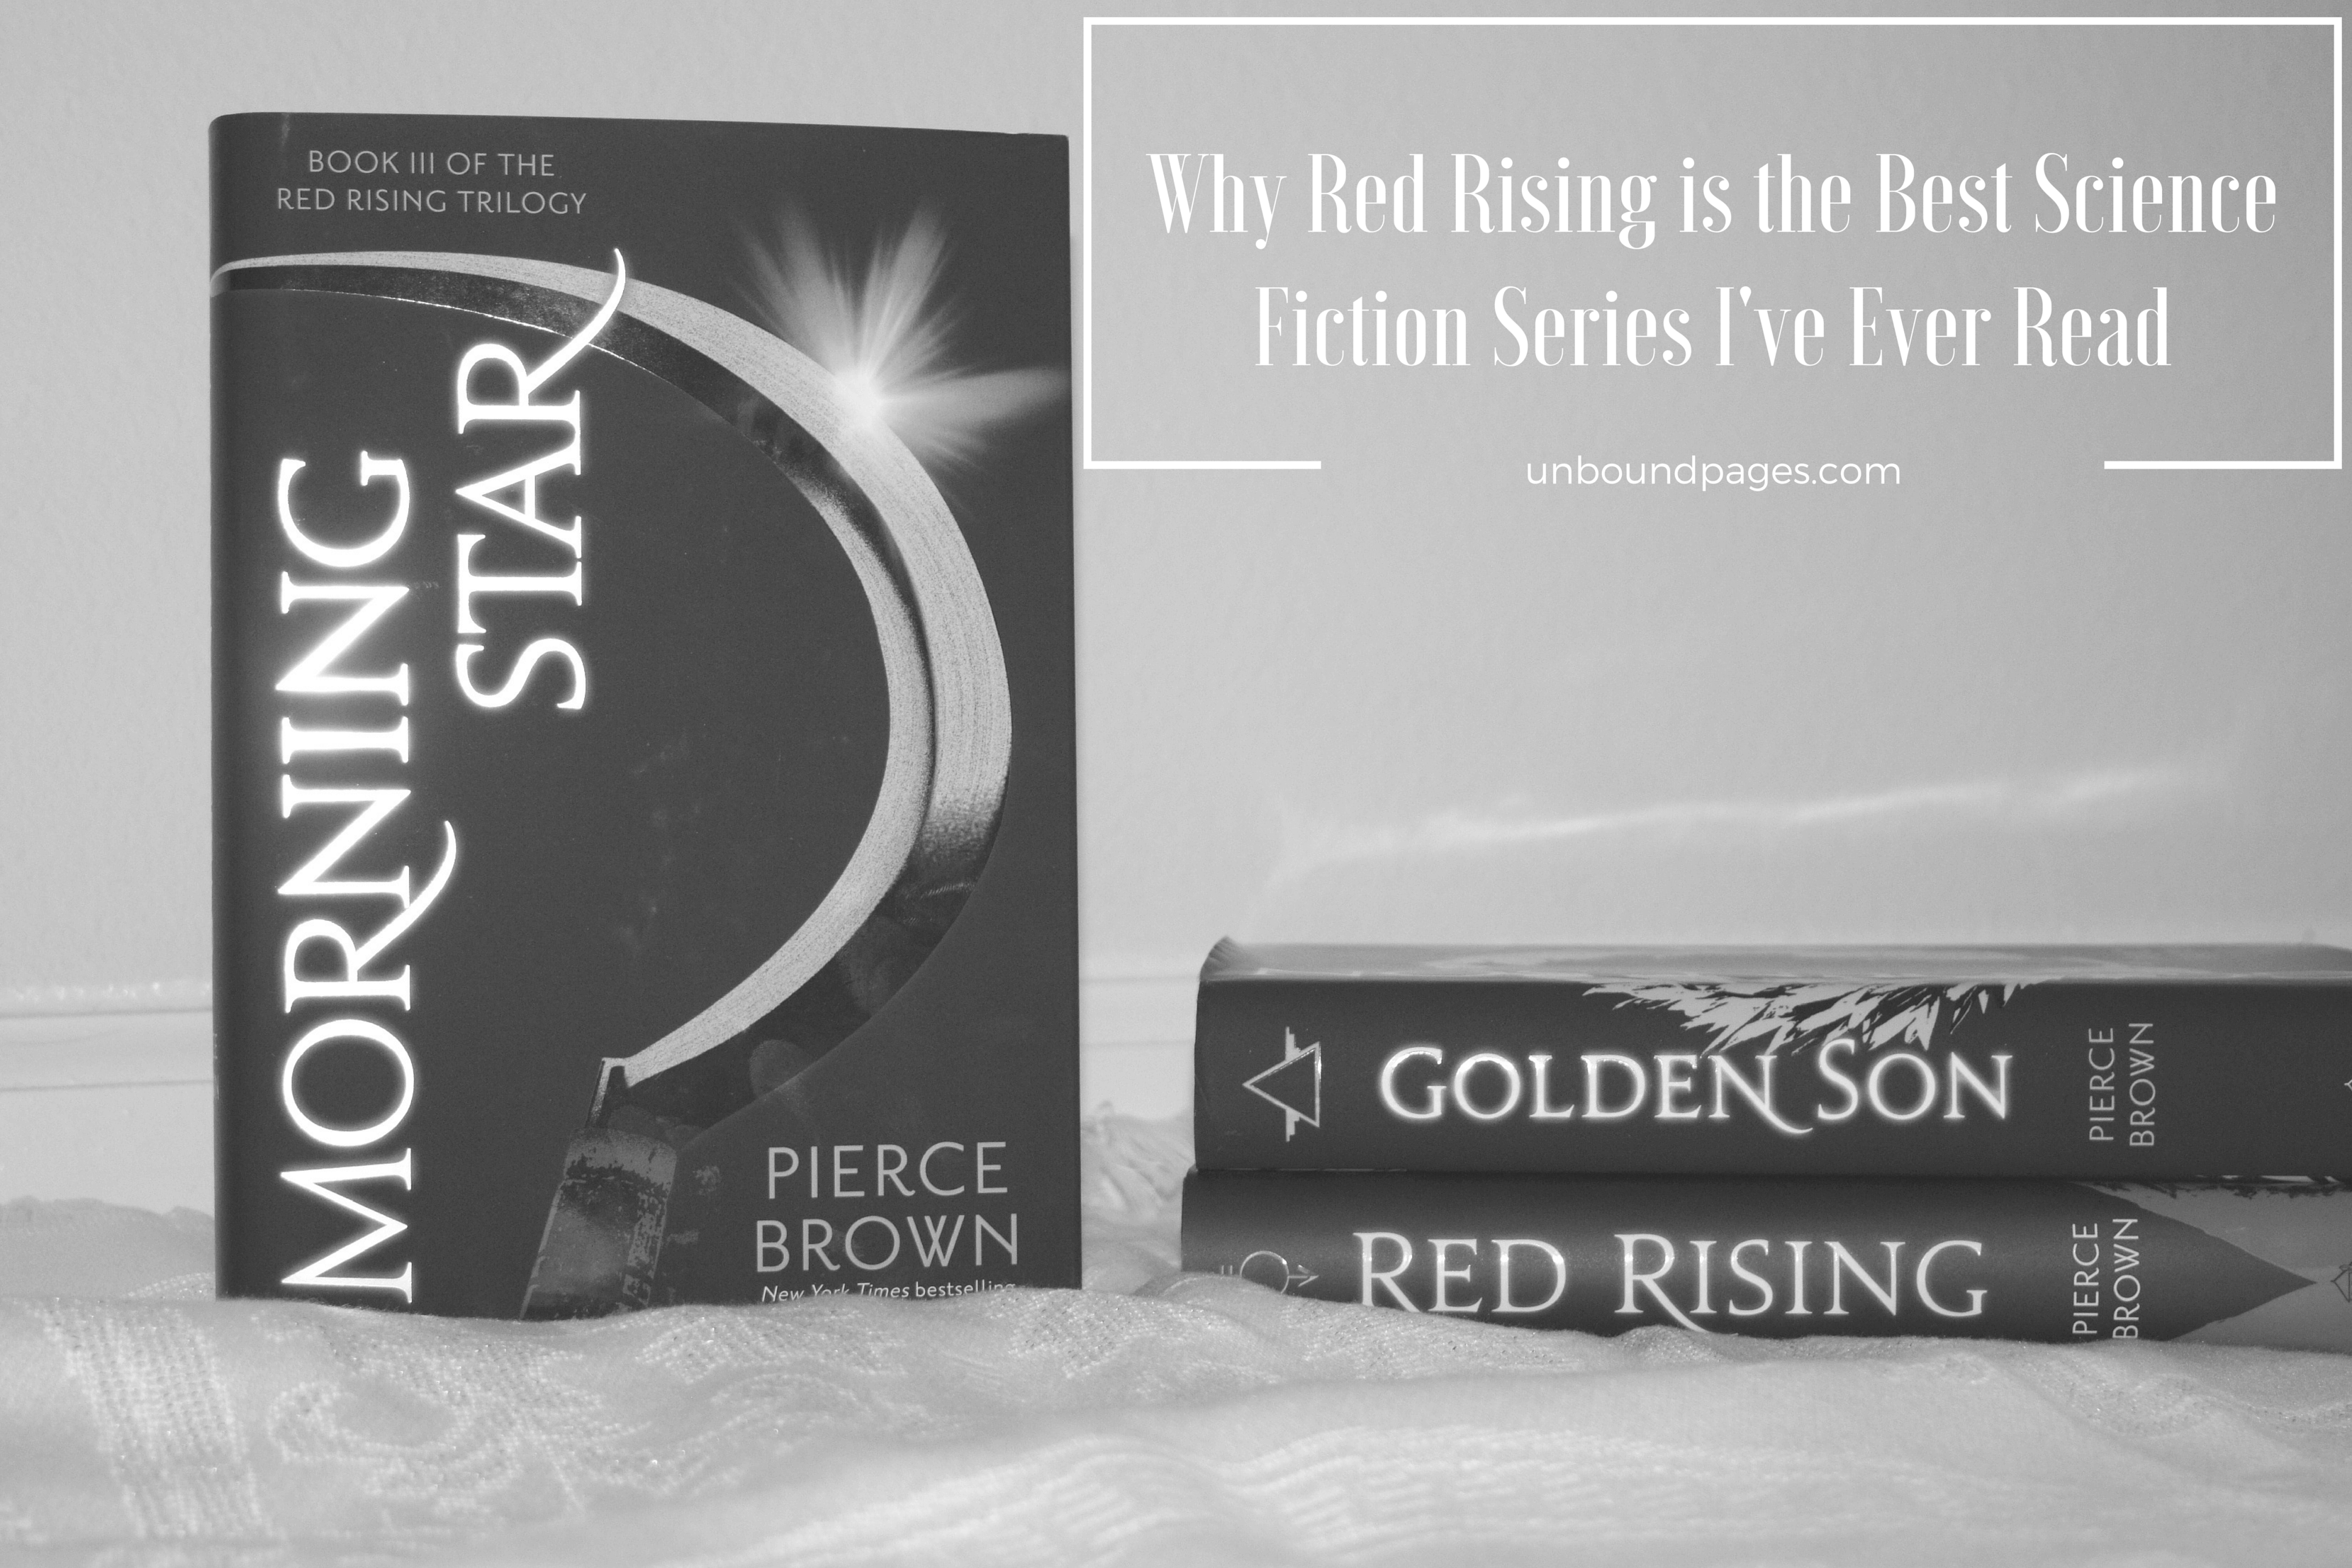 Red Rising is the best science fiction series I've ever read - the characters, plot, world, all of it is perfection - unboundpages.com